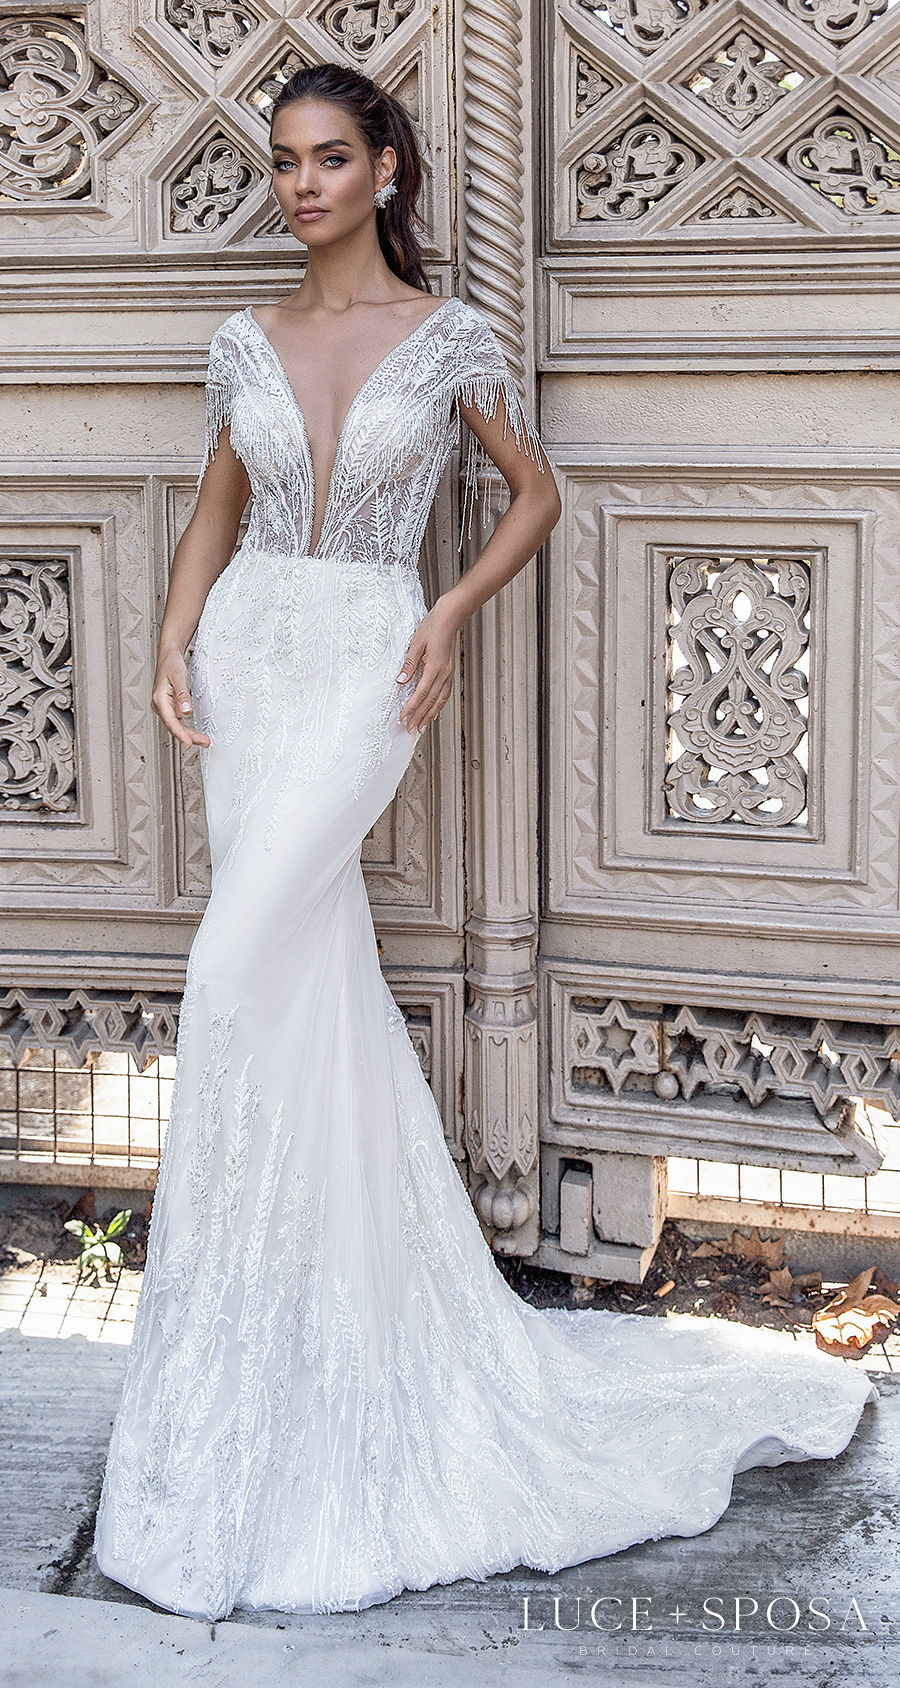 luce sposa s2021 istanbul bridal cap sleeves deep plunging v neck heavily embellished bodice glamorous elegant fit and flare wedding dress  backless chapel train (destiny) mv